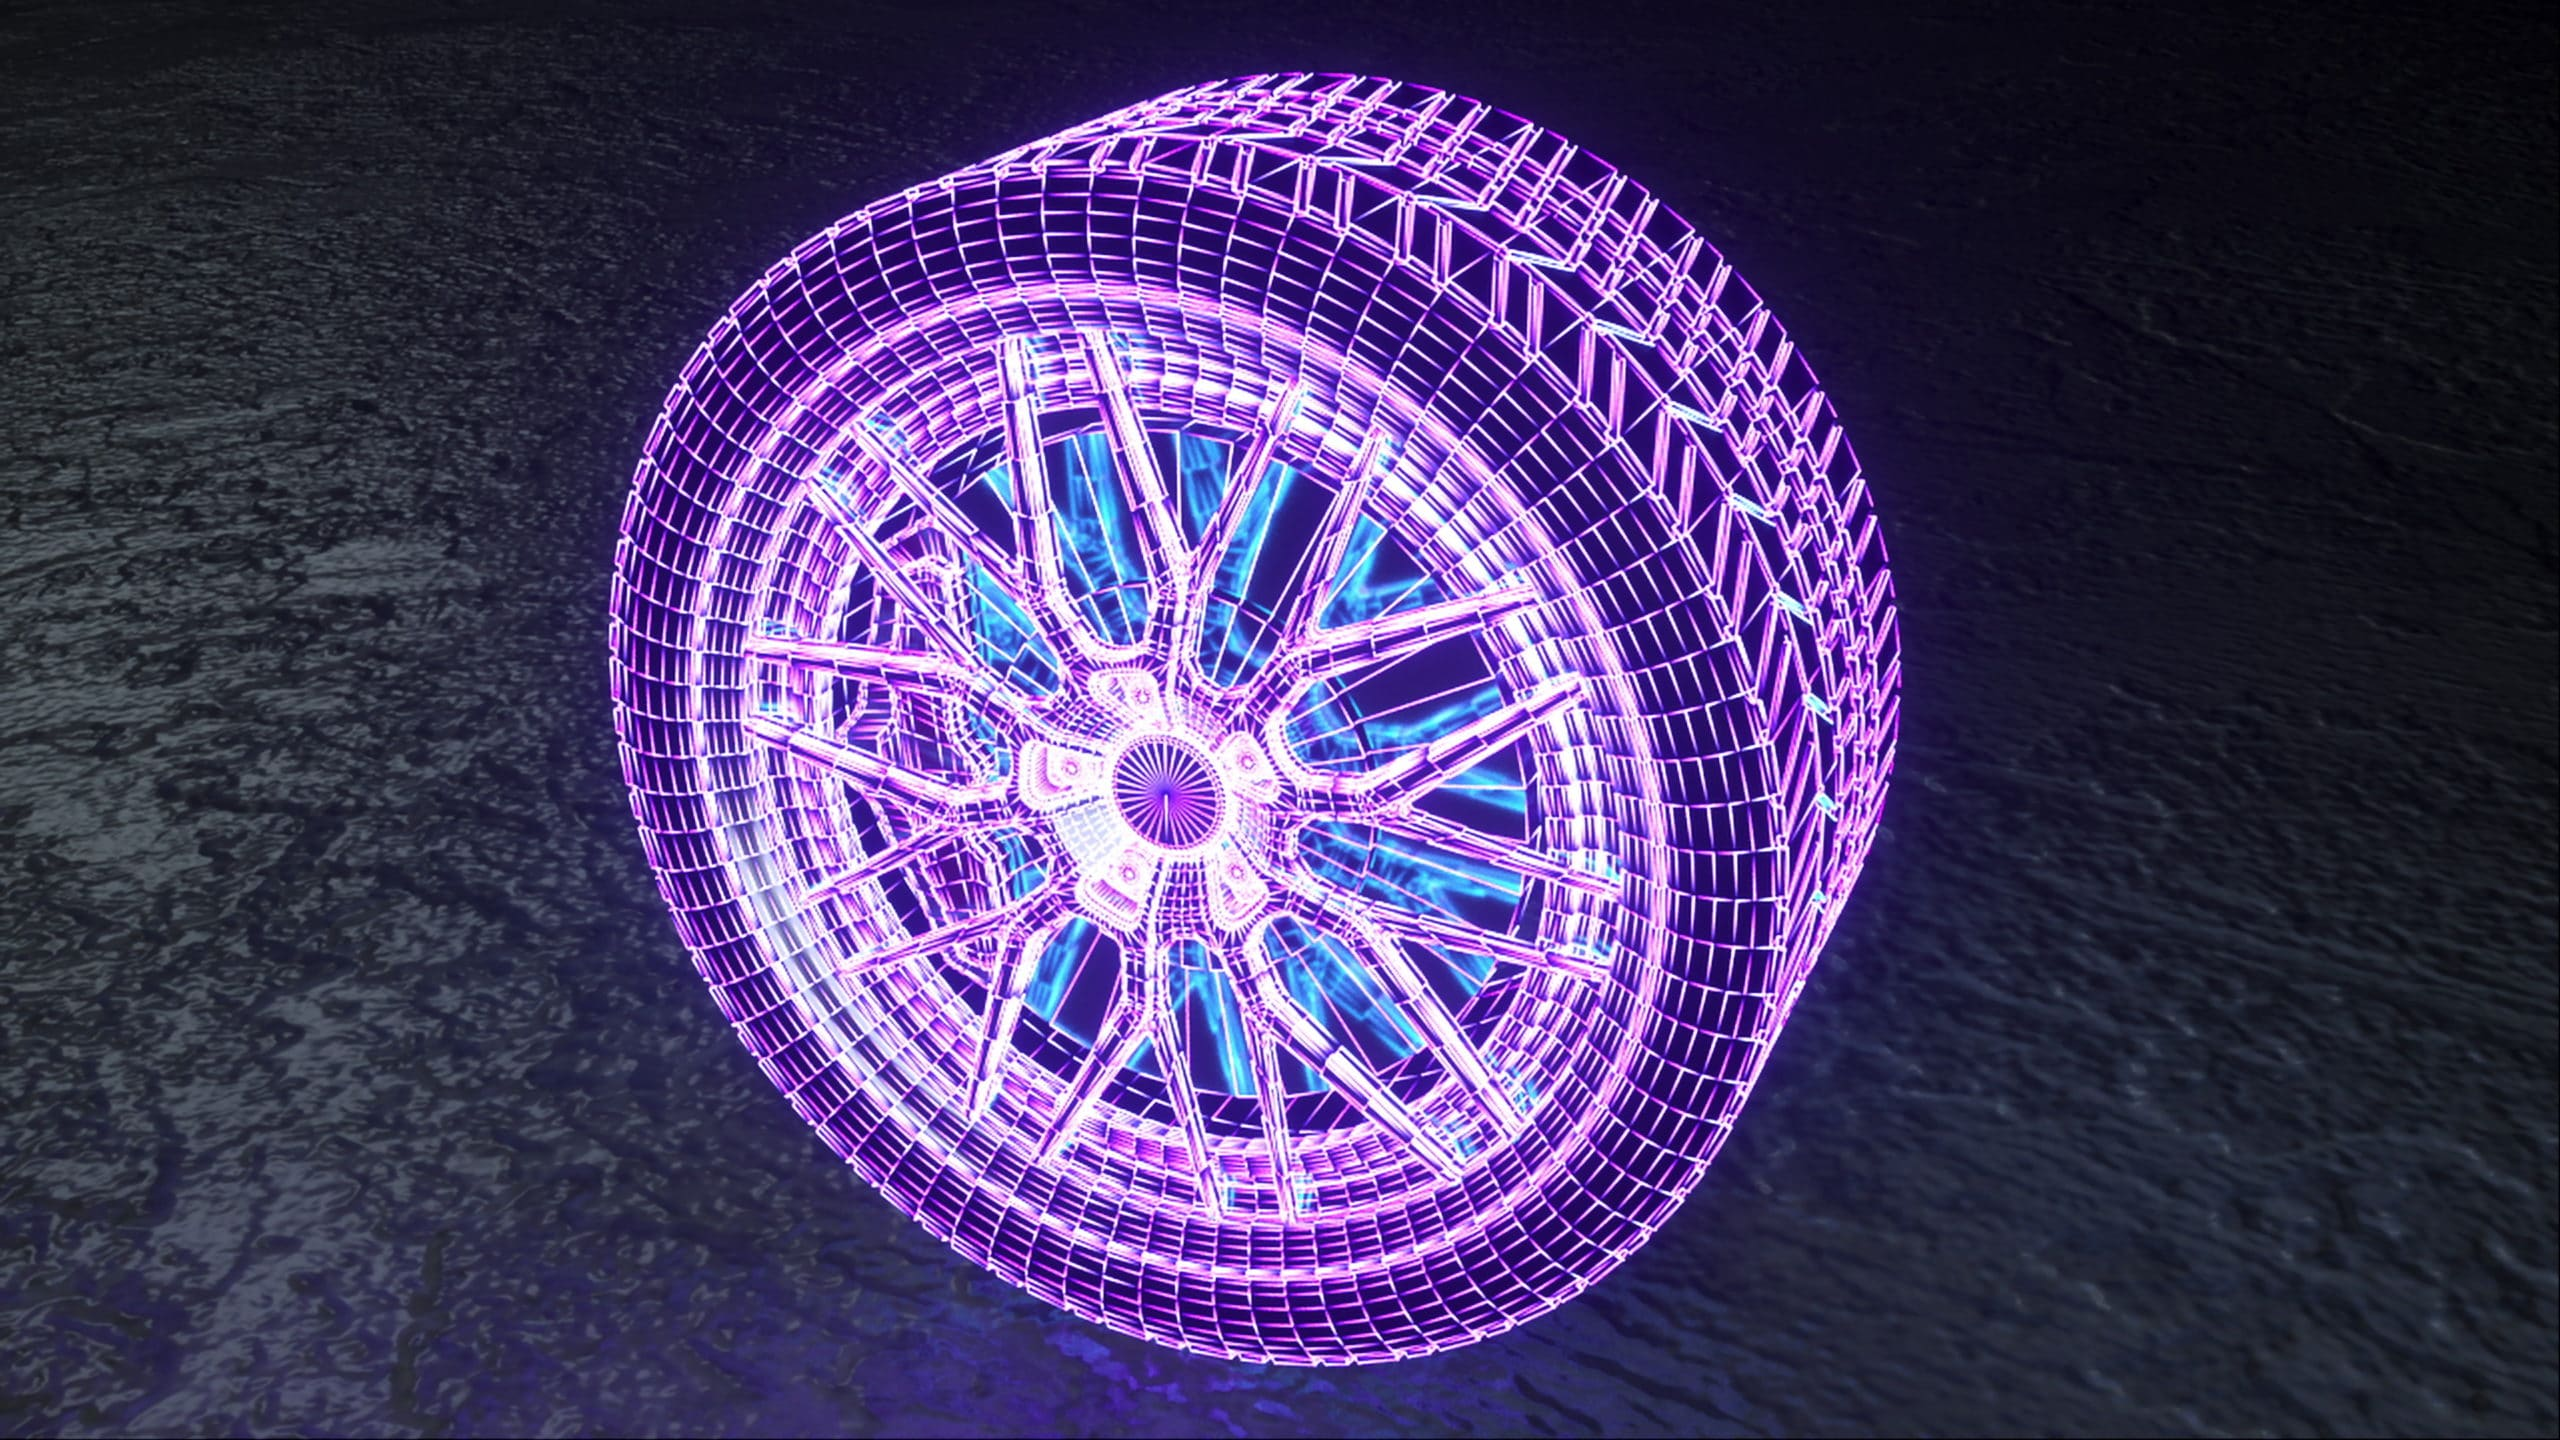 3D hologram of car tire as sales example for trade shows